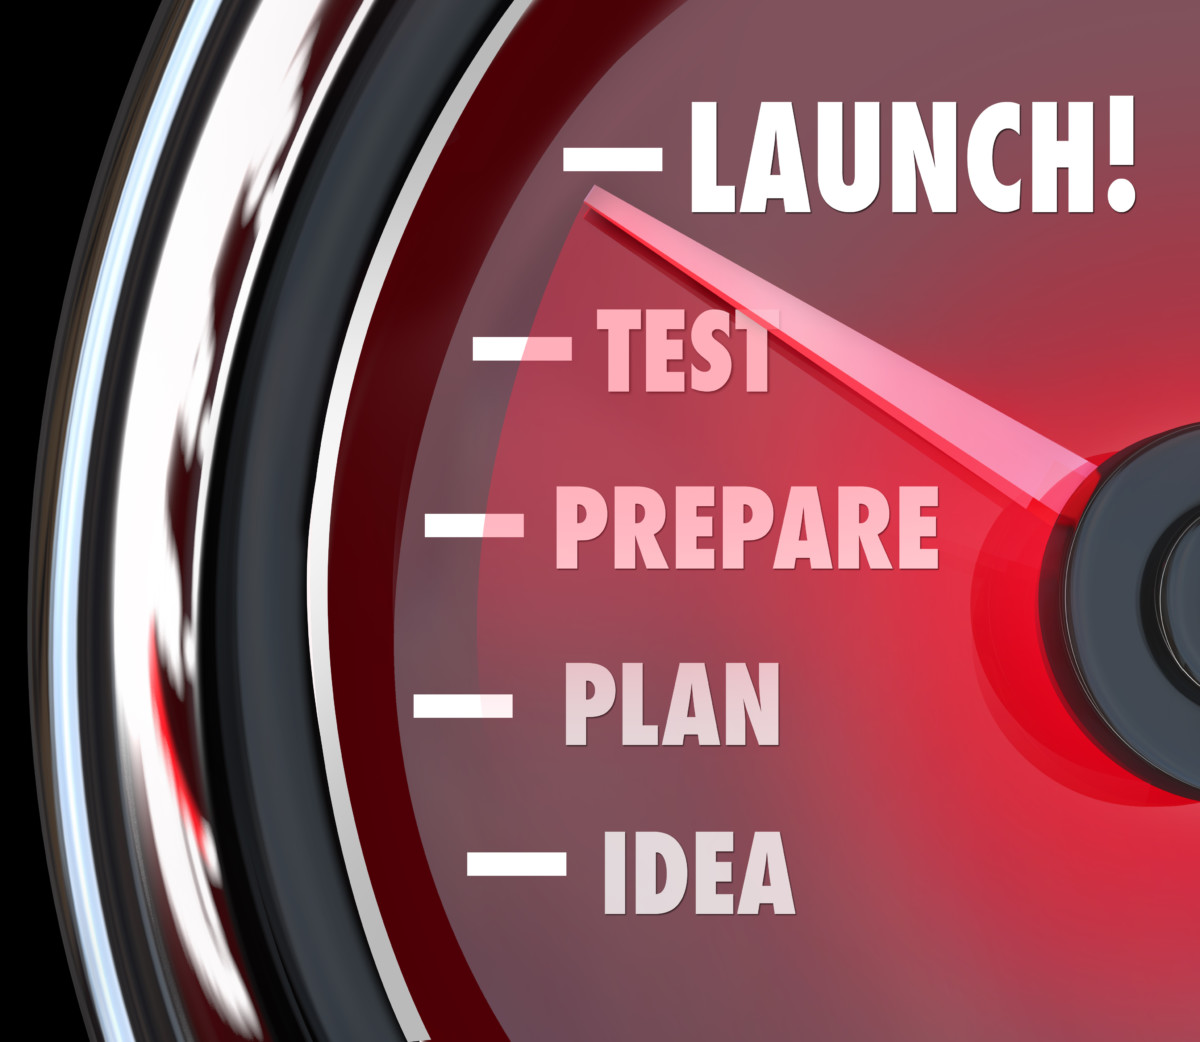 Launch word on a red speedometer with needle racing past Idea, Plan, Prepare and Test to illustrate the successful starting or beginning of a new product, business or company